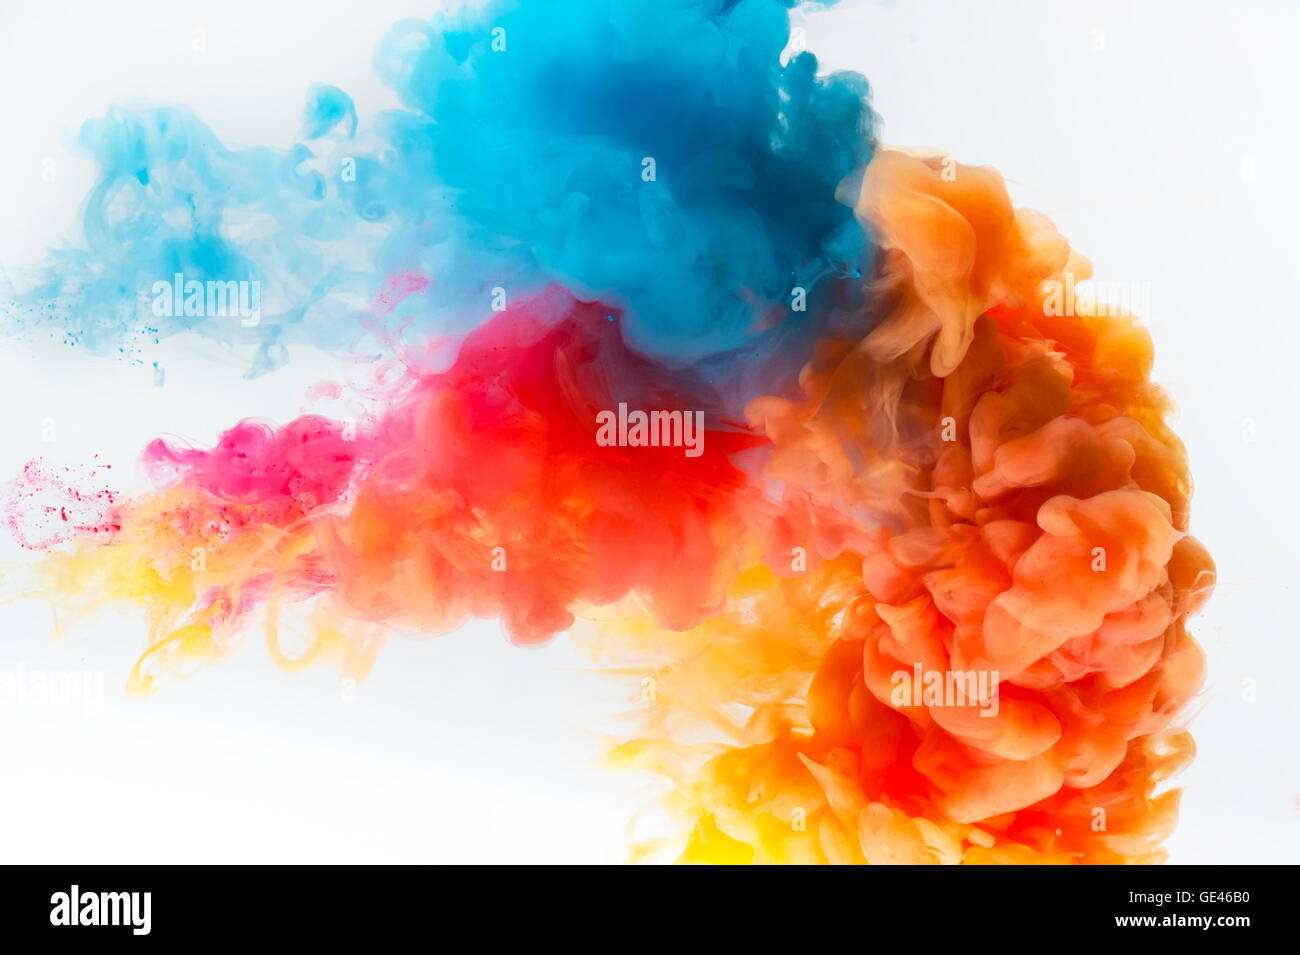 red yellow and blue colors paint splash on a white background stock photo 111960212 alamy. Black Bedroom Furniture Sets. Home Design Ideas